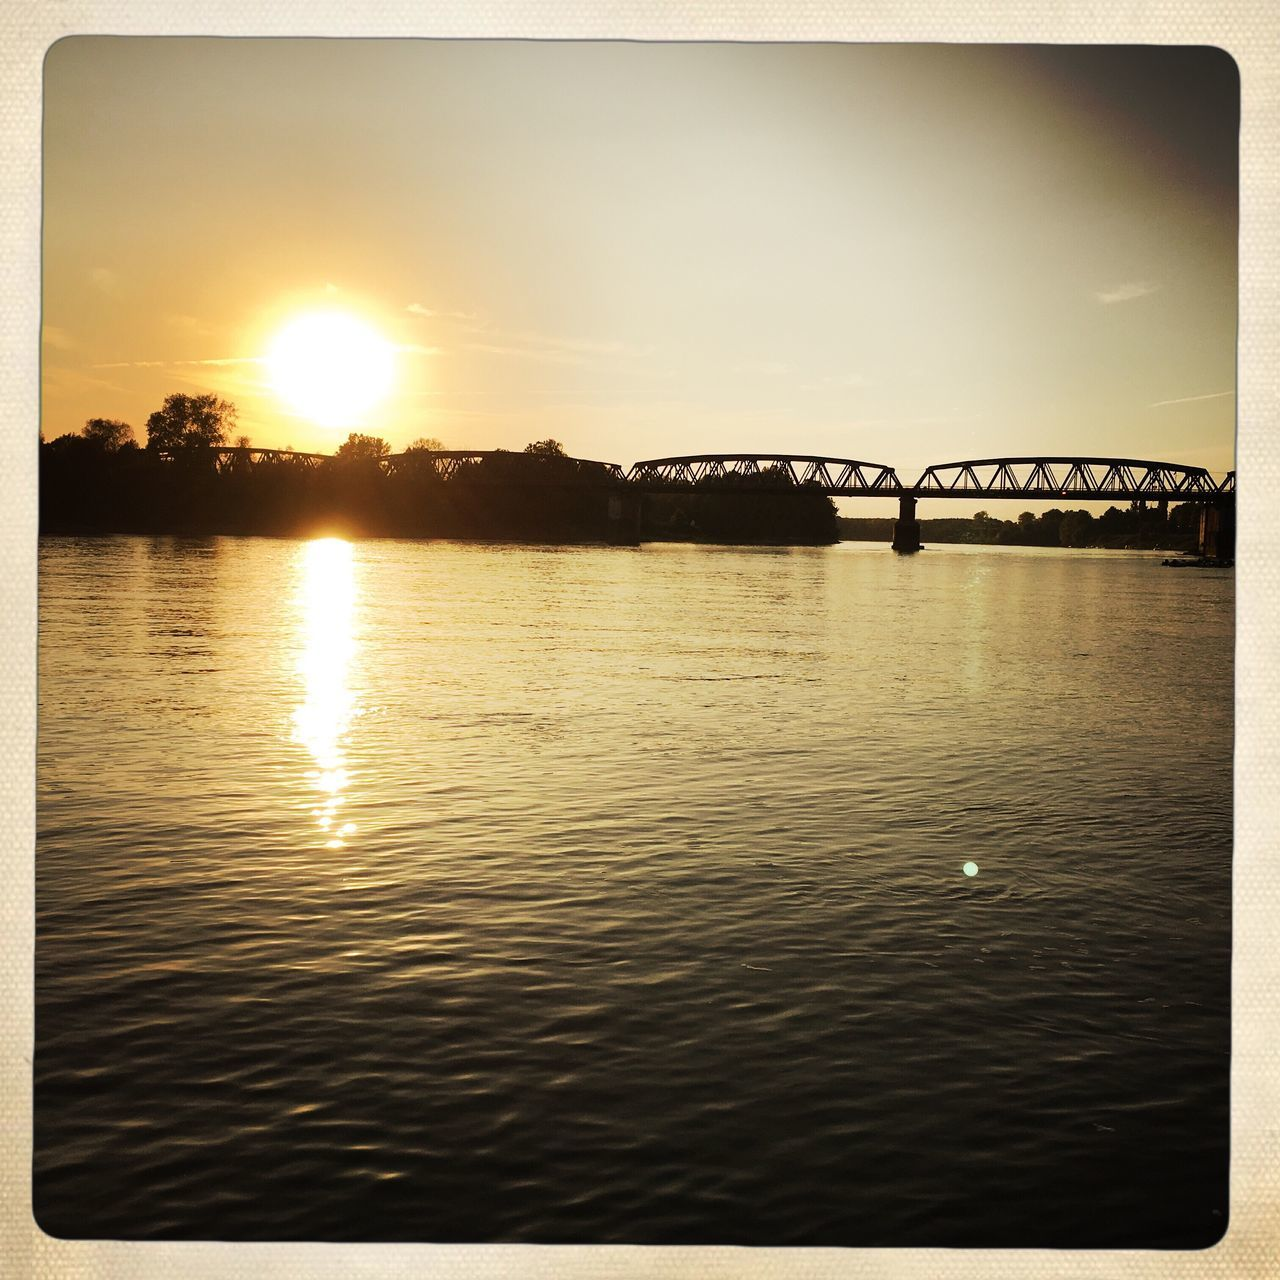 sunset, bridge - man made structure, connection, water, river, sunlight, sun, reflection, outdoors, no people, sky, silhouette, architecture, nature, built structure, beauty in nature, scenics, day